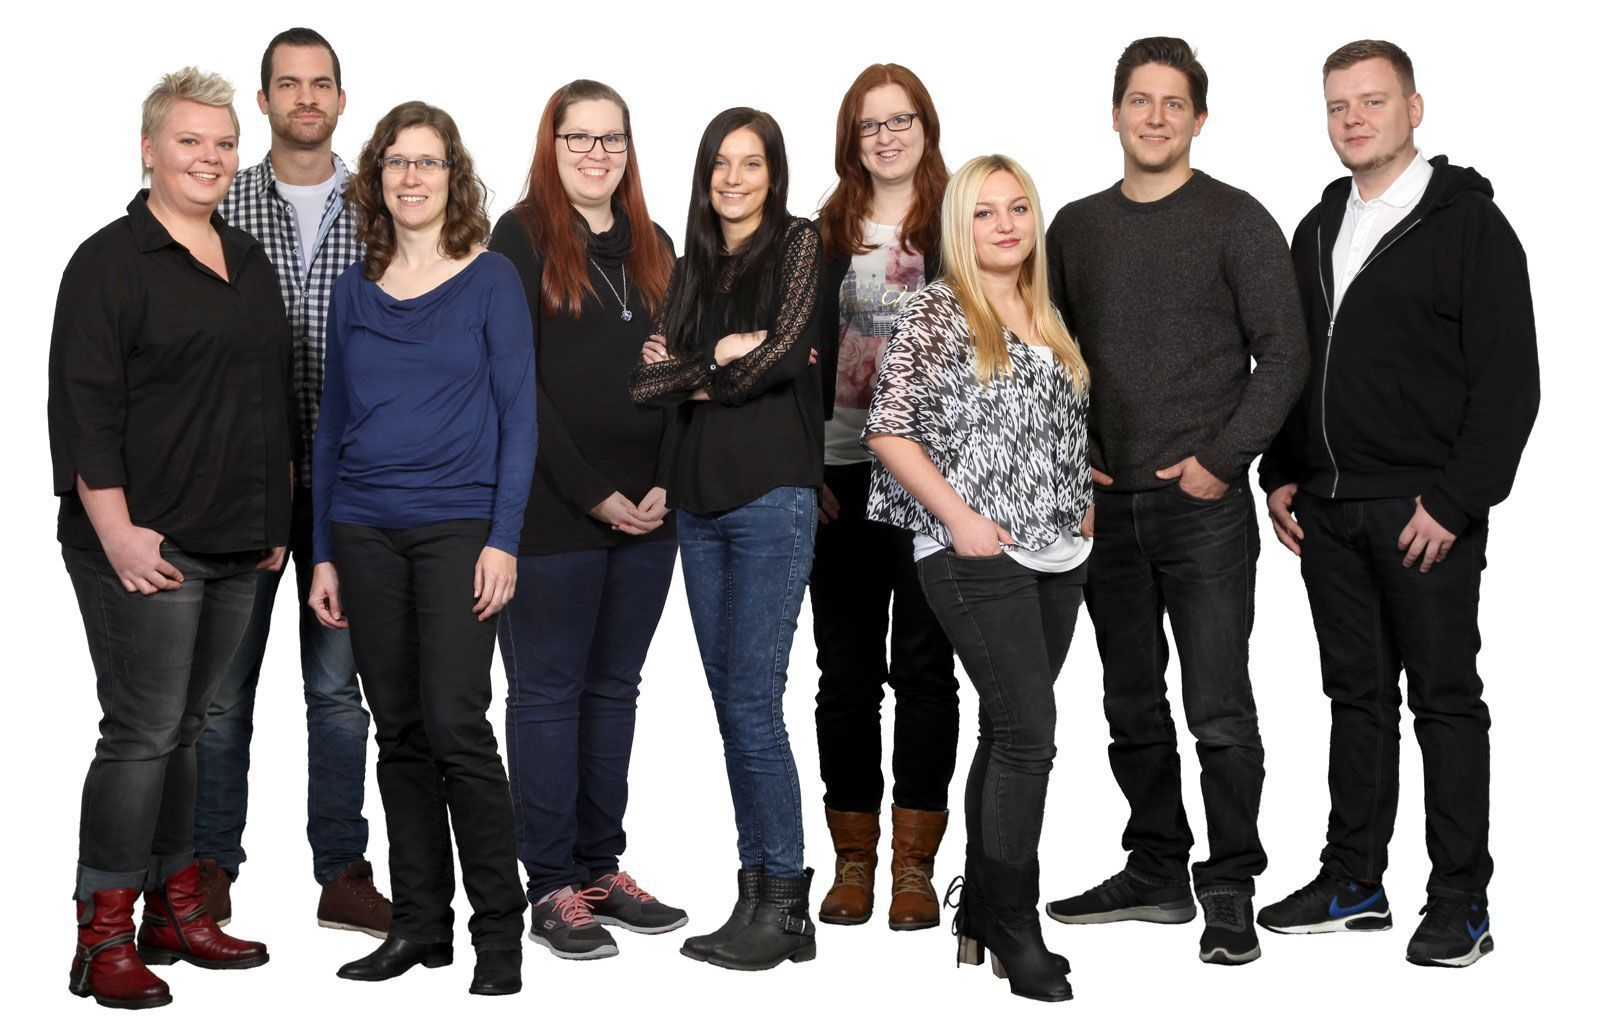 Gruppenfoto vom Kreativteam